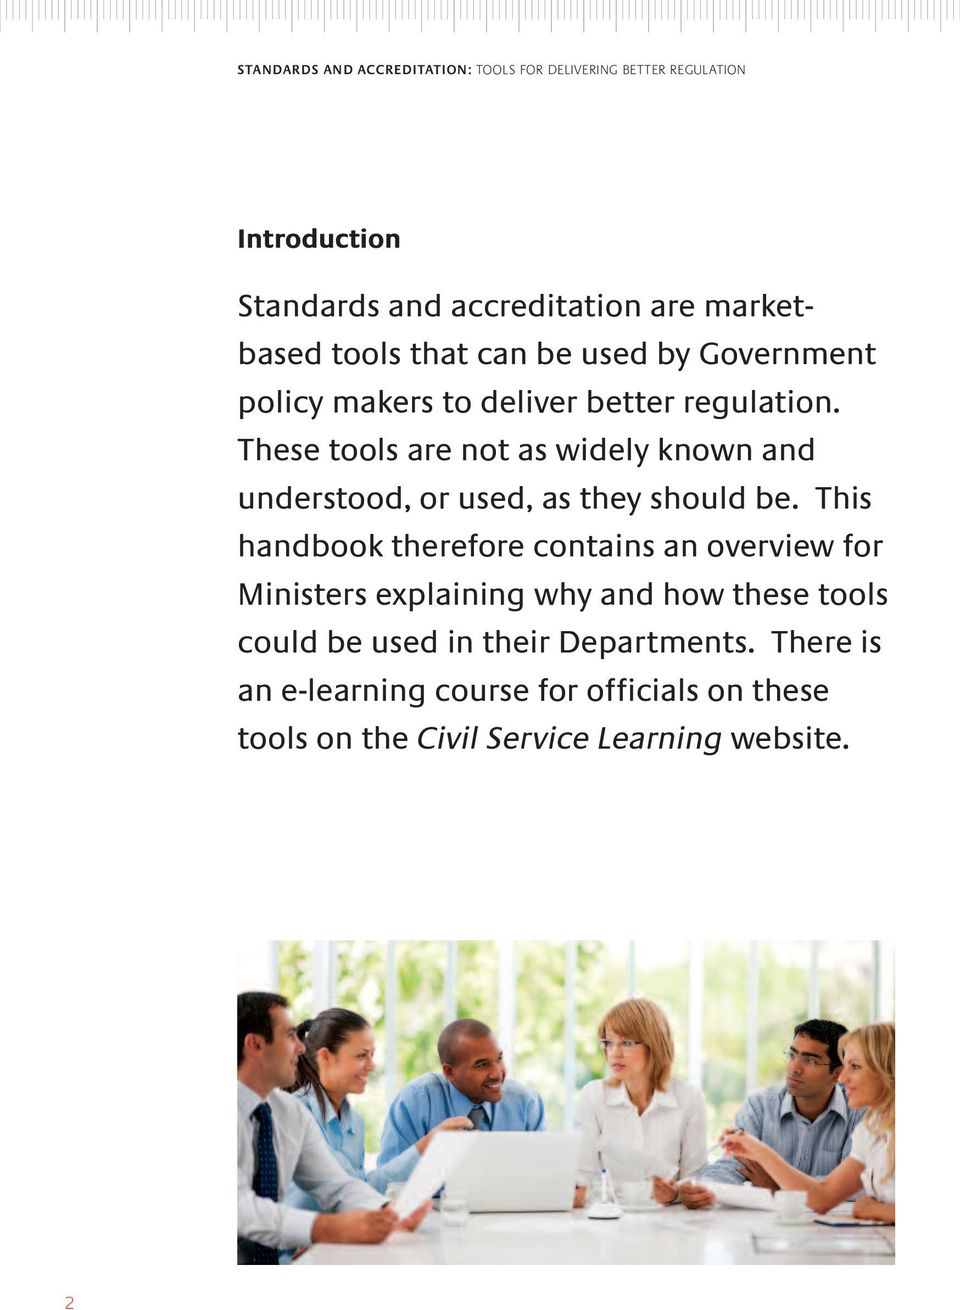 This handbook therefore contains an overview for Ministers explaining why and how these tools could be used in